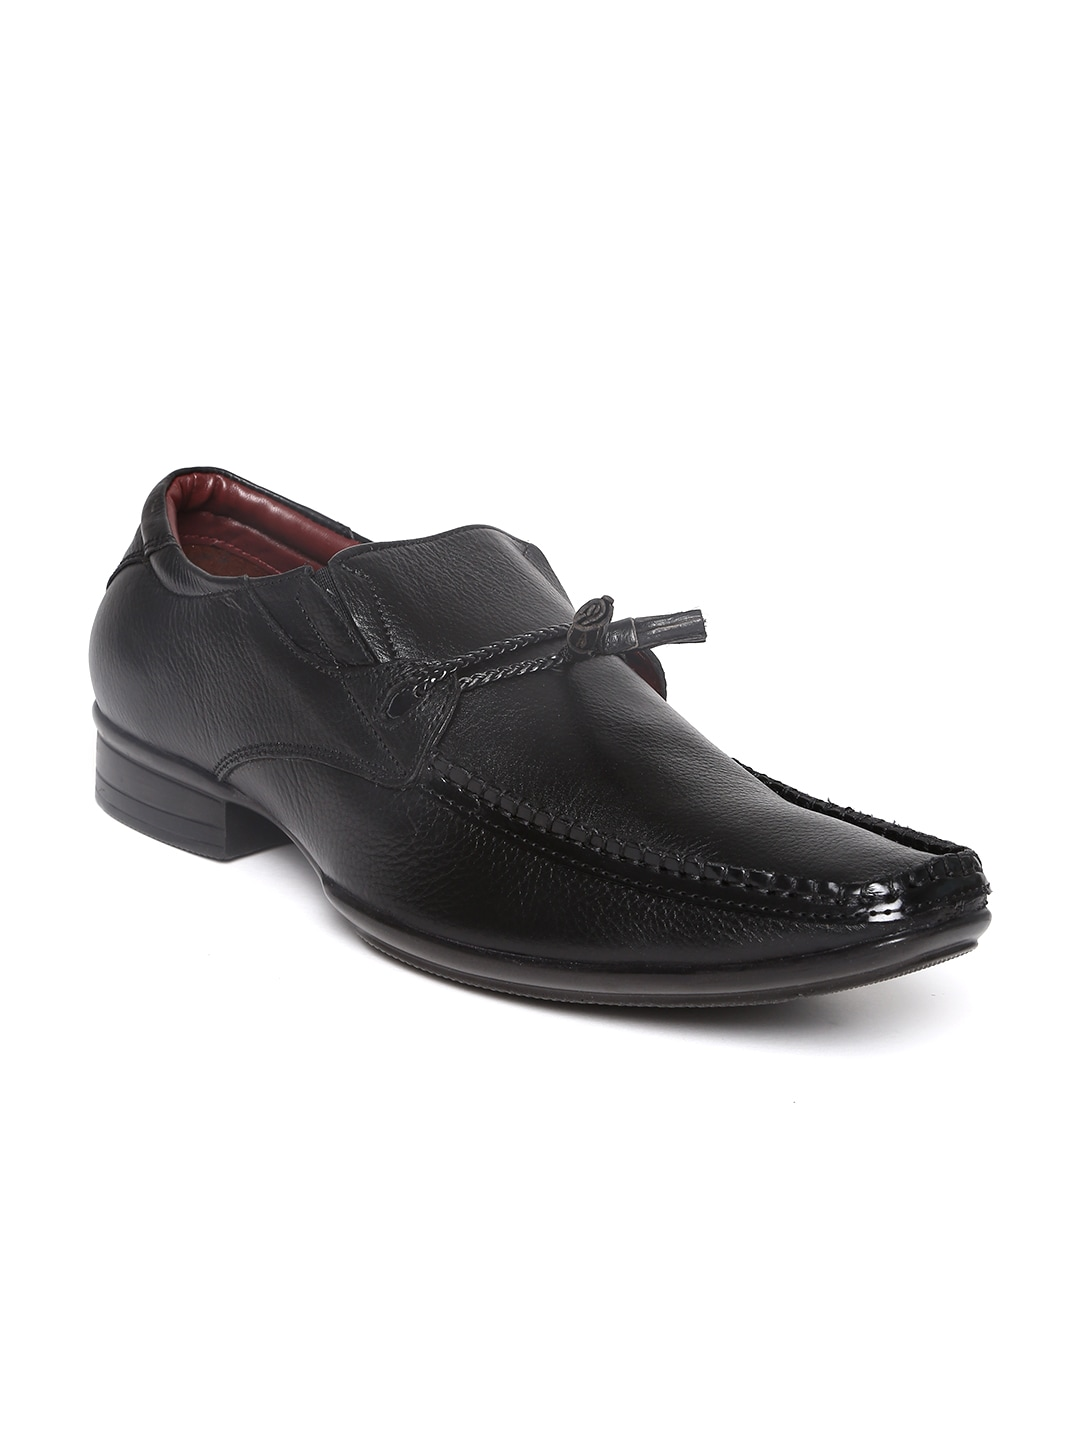 Delize Men Black Leather Semiformal Shoes